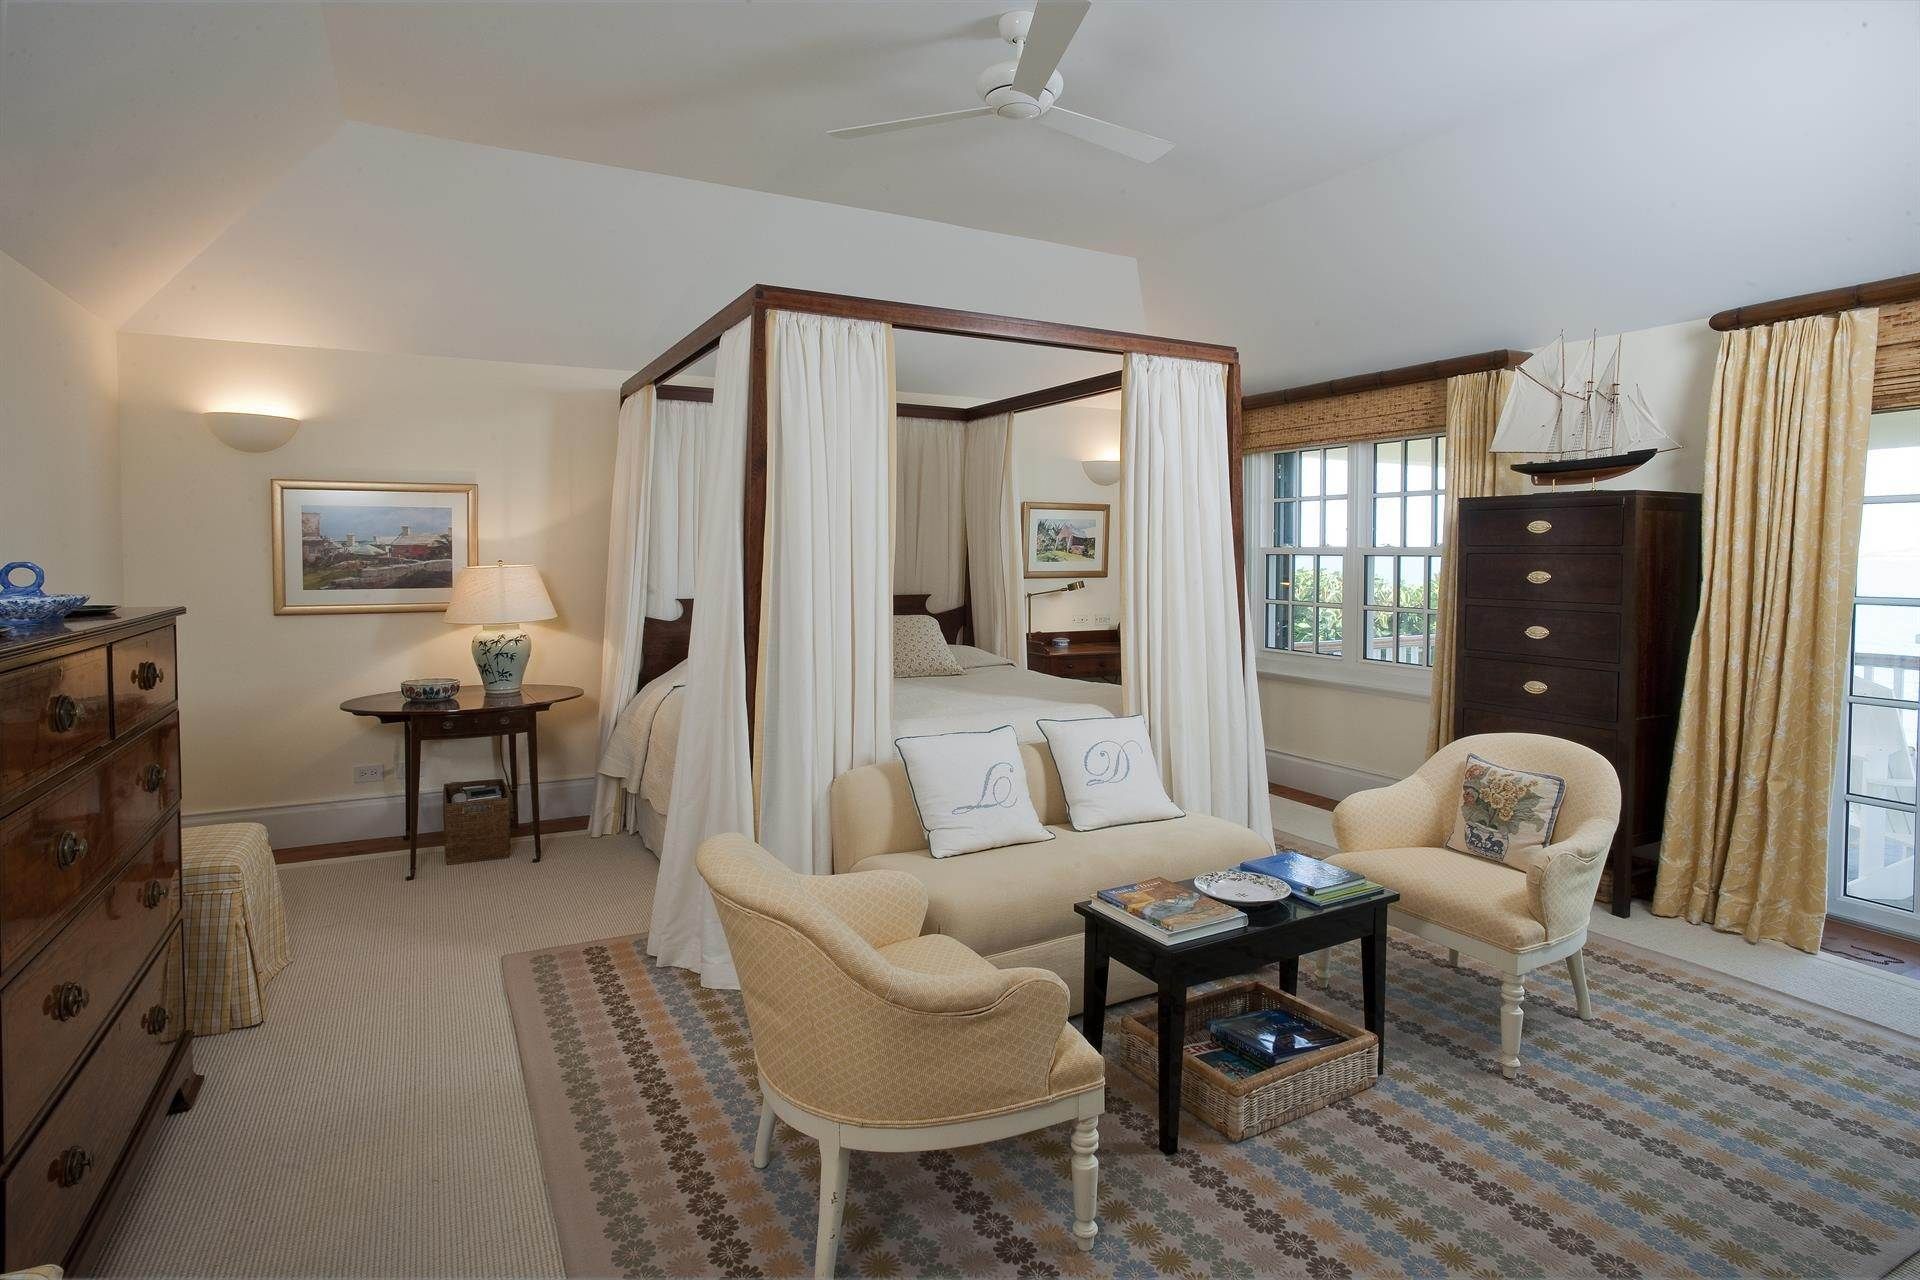 26. Waterfront Property at Lily Lodge In Tucker's Town , St Georges Parish, Bermuda HS02 Bermuda